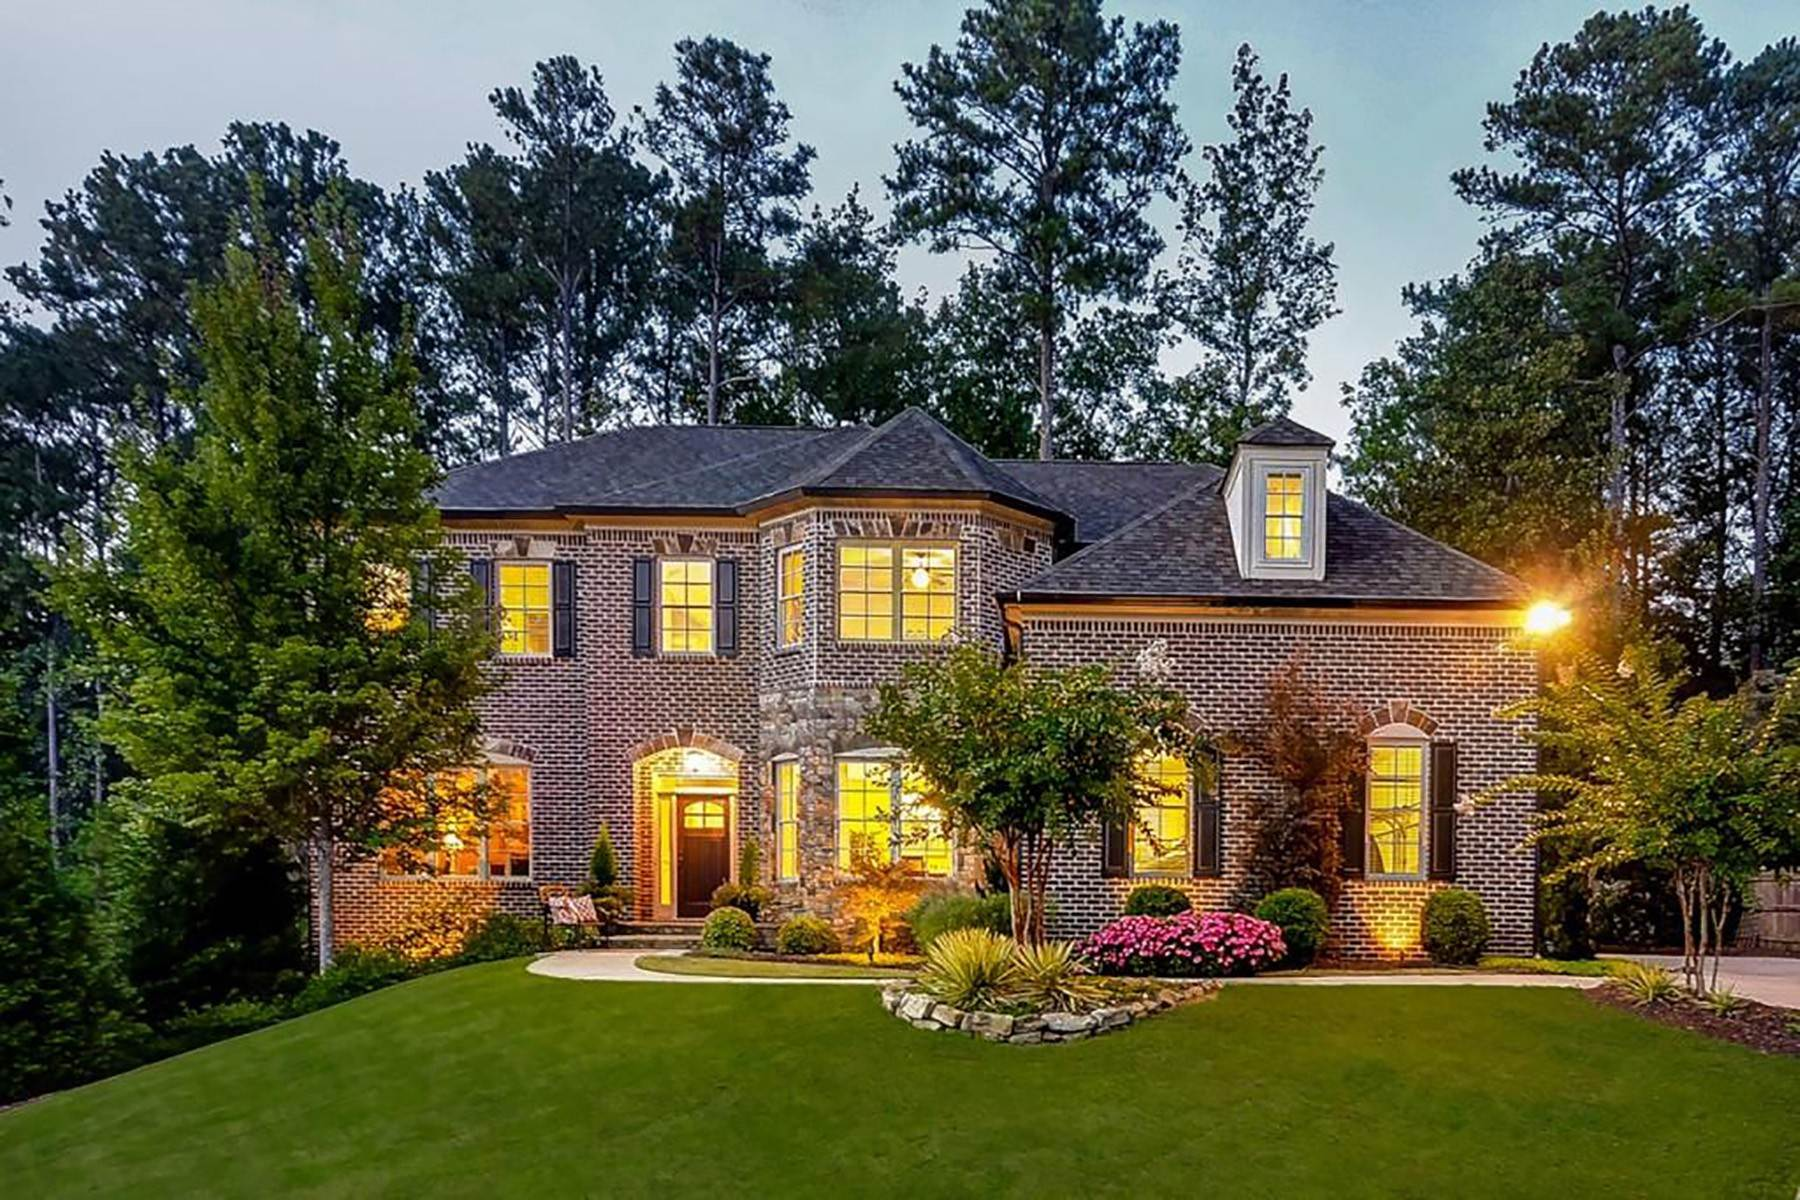 Single Family Homes for Sale at Fabulous Cul-De-Sac Home in the Heart of East Cobb 2297 Marston Park Drive Marietta, Georgia 30062 United States